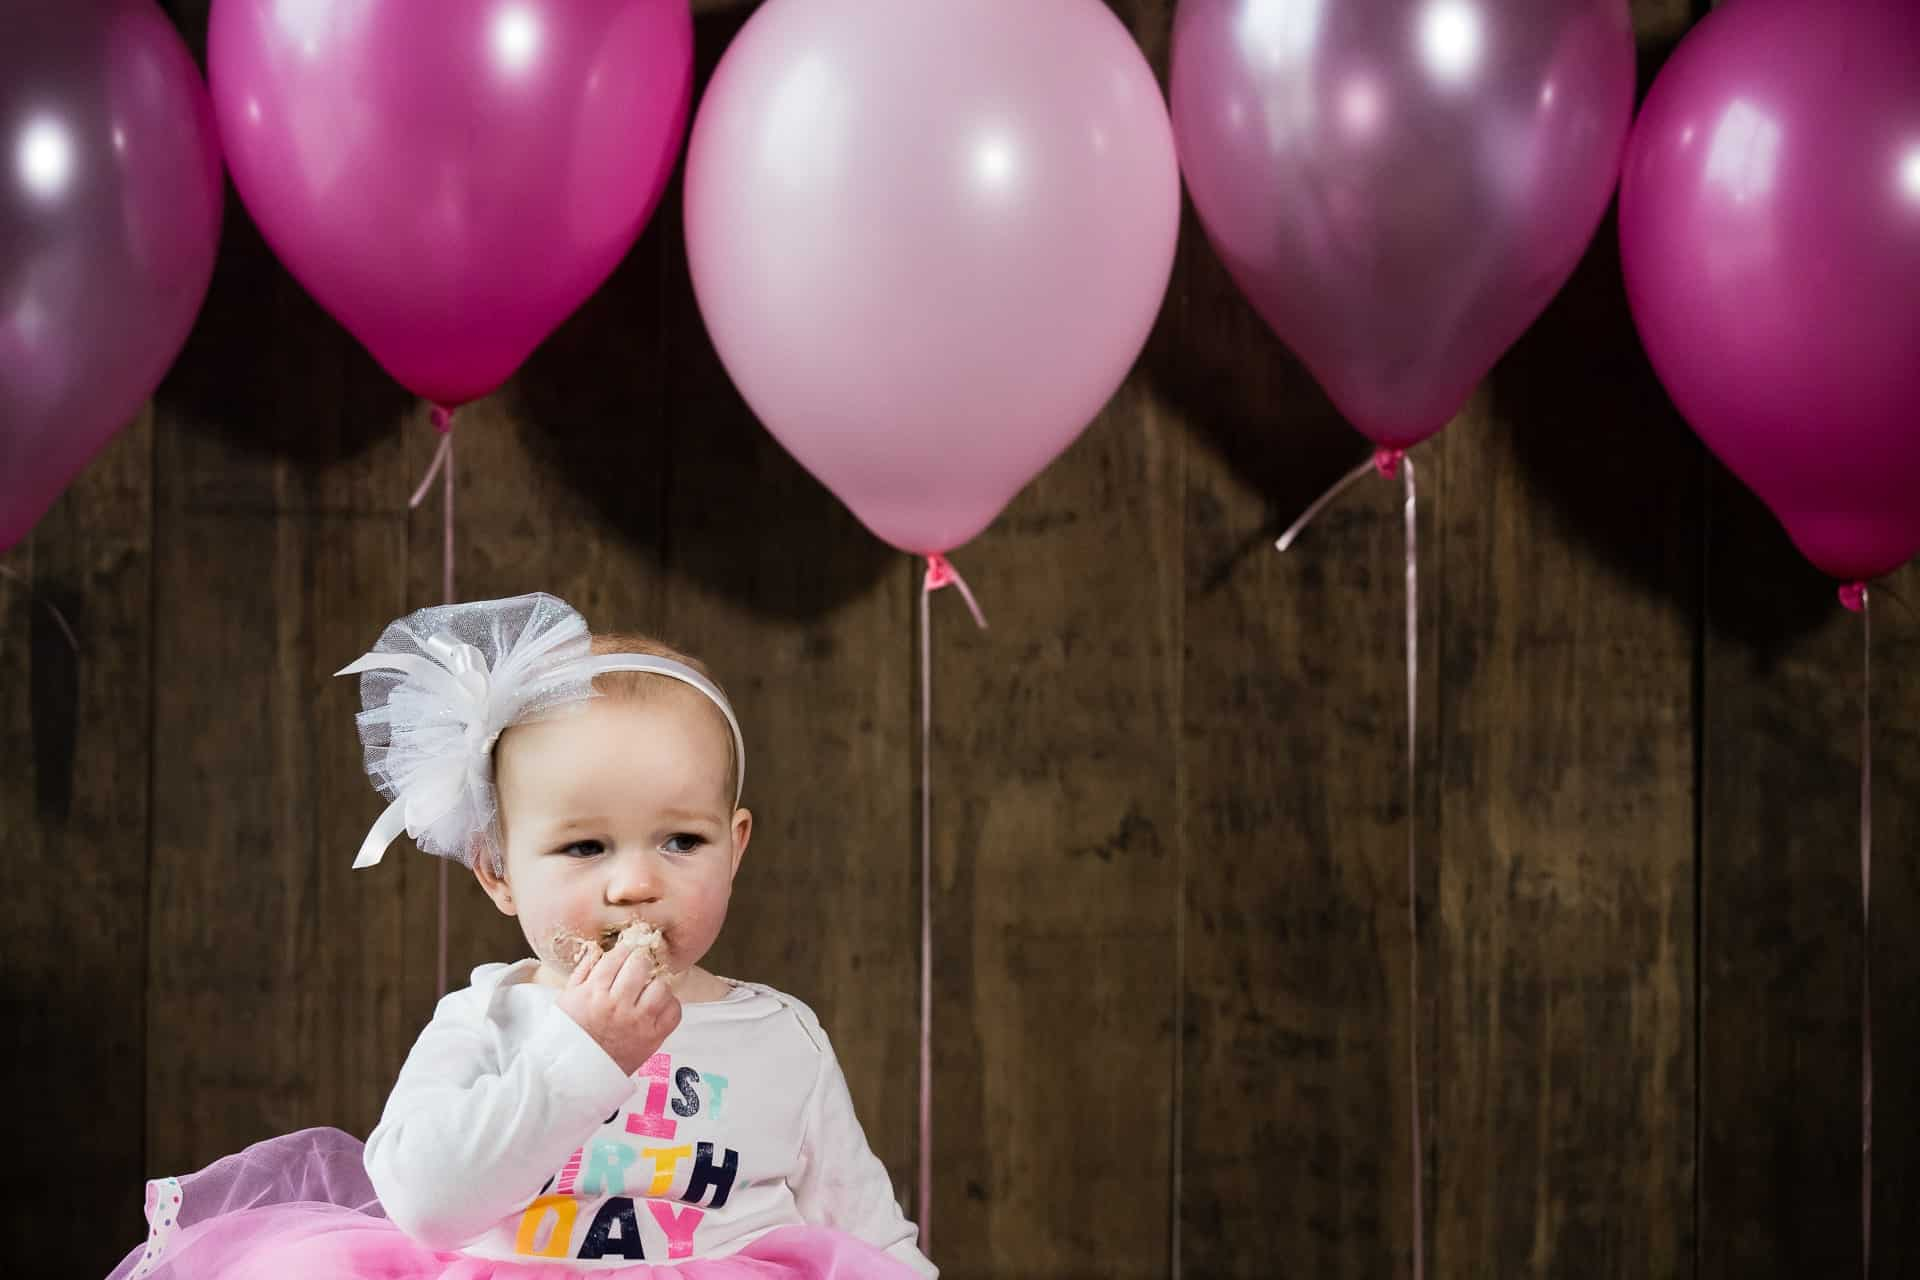 Little girl eating cake in front of pink balloons